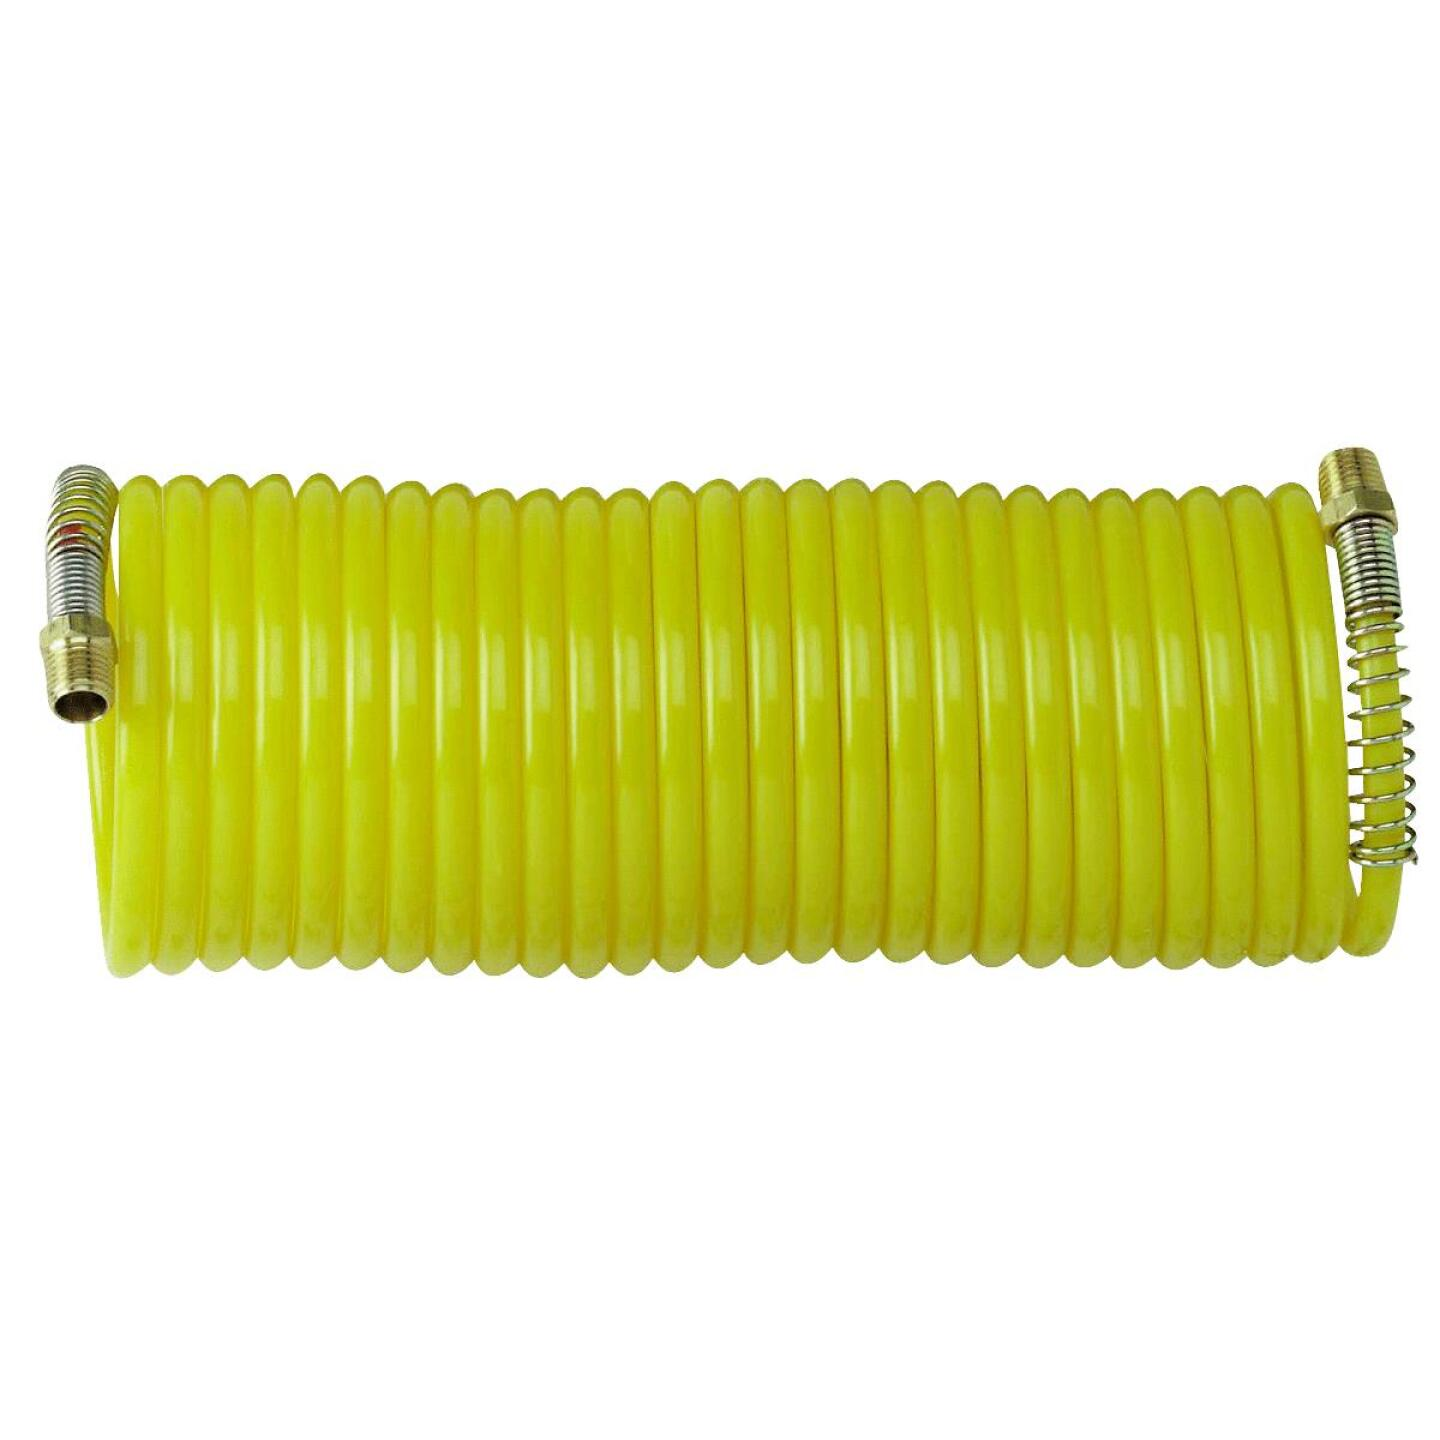 Campbell Hausfeld 1/4 In. x 25 Ft. Nylon Recoil Air Hose Image 1